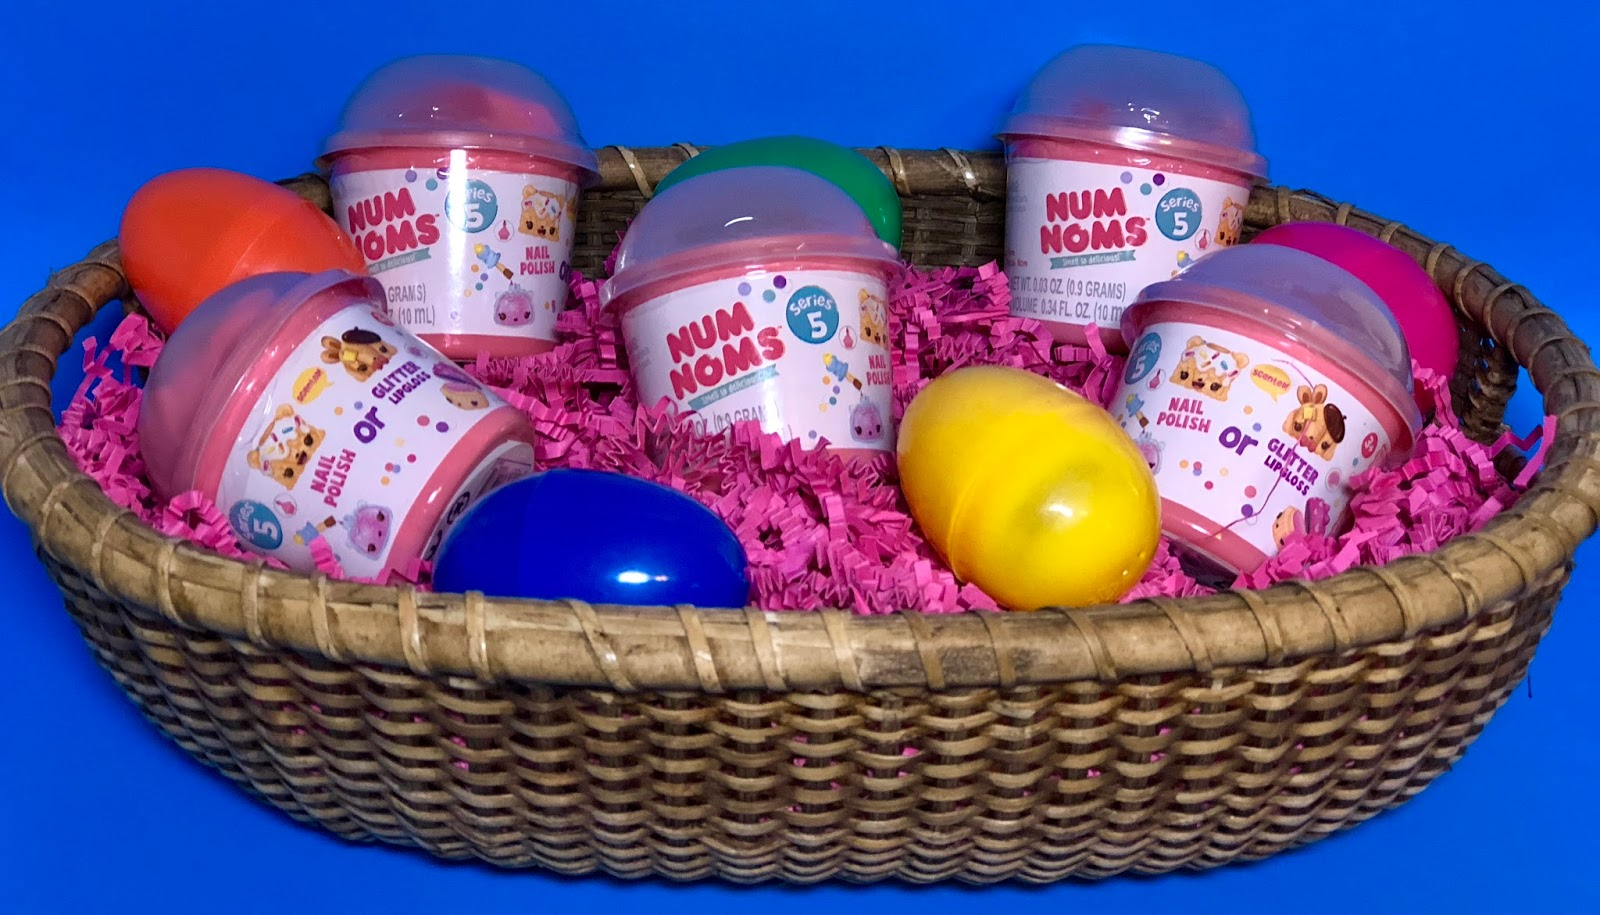 Stacy tilton reviews num noms for easter this year ive decided as part of my daughters easter basket im going to be adding some of the latest series 5 num noms i know she will be super excited negle Image collections